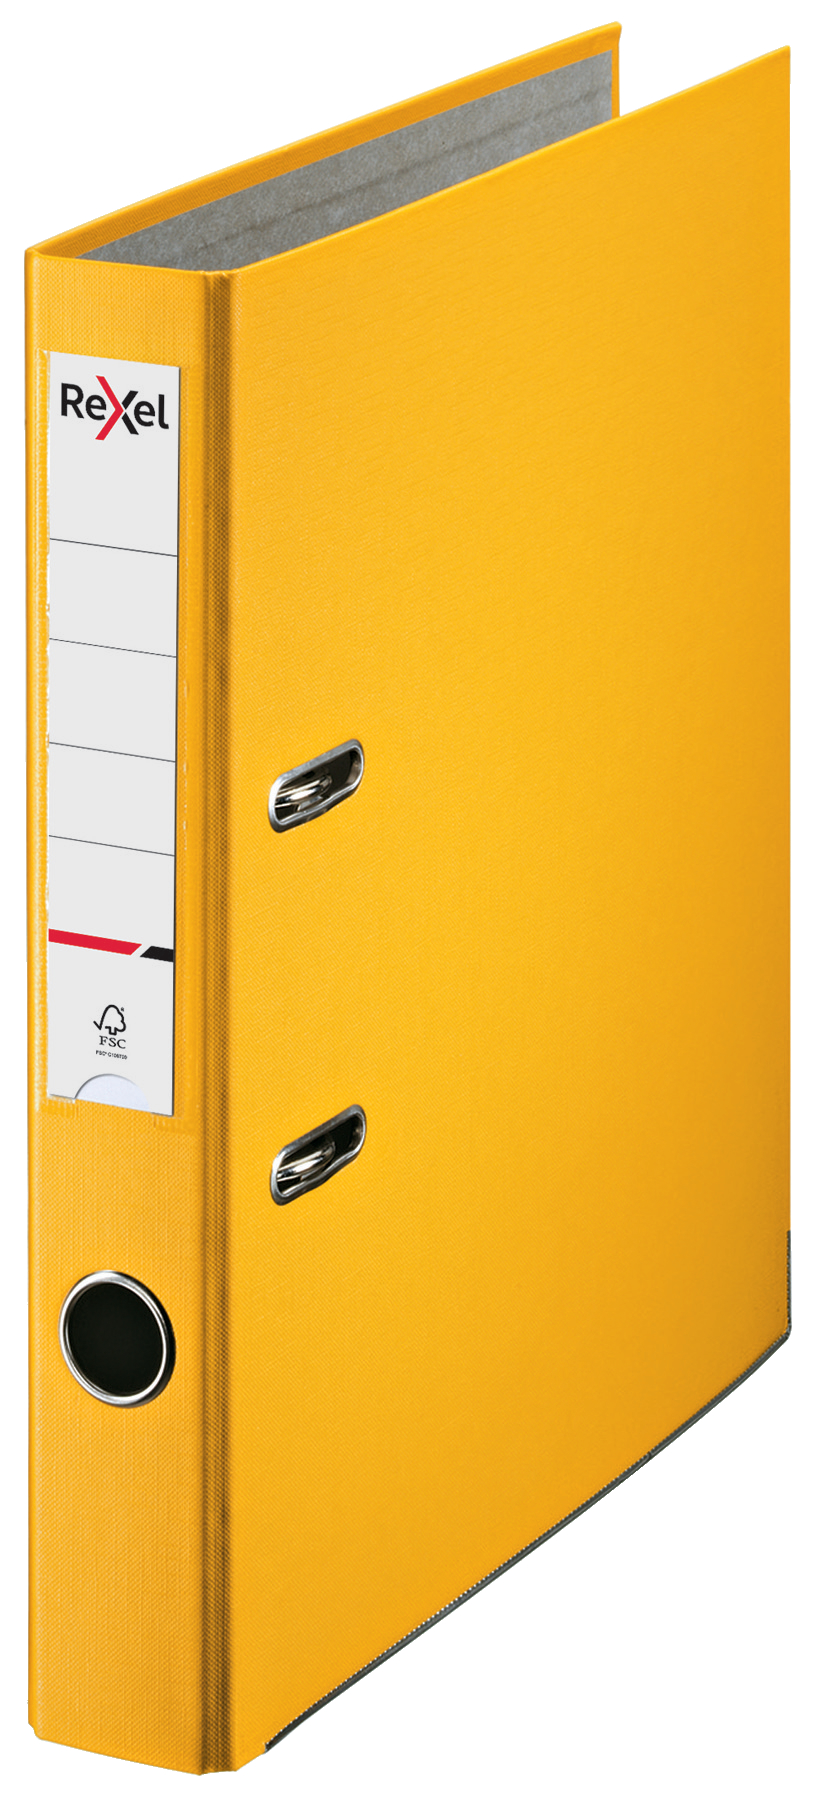 Lever Arch Files Rexel Lever Arch File ECO Polypropylene A4 50mm Spine Width Yellow